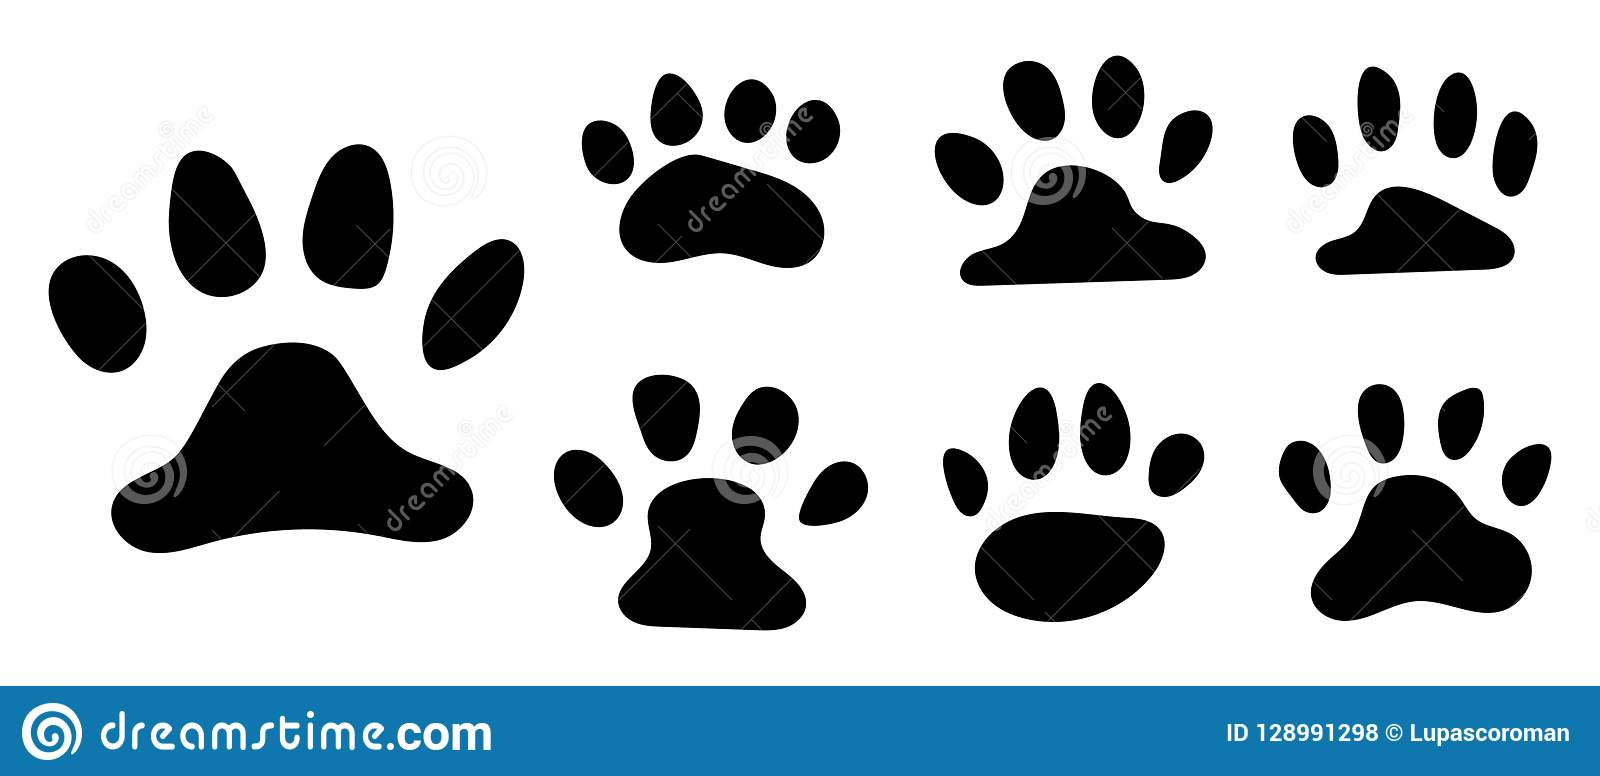 Pets paw footprint. Cat paws prints, kitten foots or dog foot print. Pet rescue logo puppy footprint marks animal shape